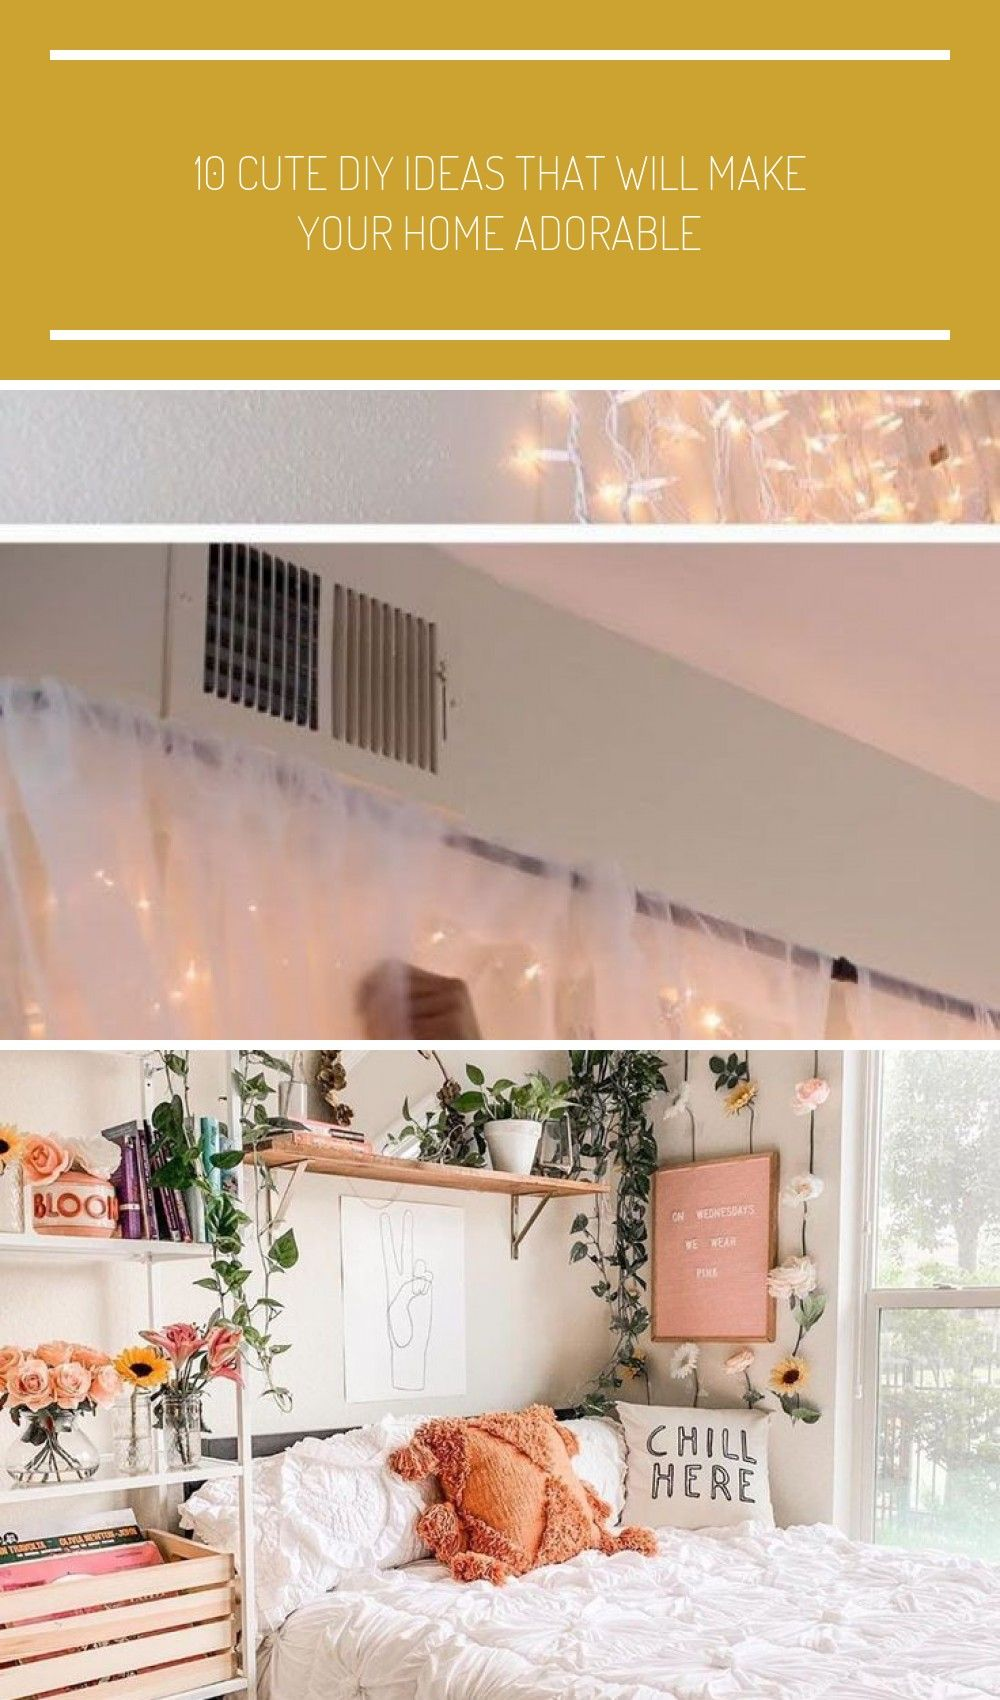 10 Cute DIY Ideas That Will Make Your Home Adorable # home decor ideas diy bedrooms 10 Cute DIY Ideas That Will Make Your Home Adorable #cuteideas